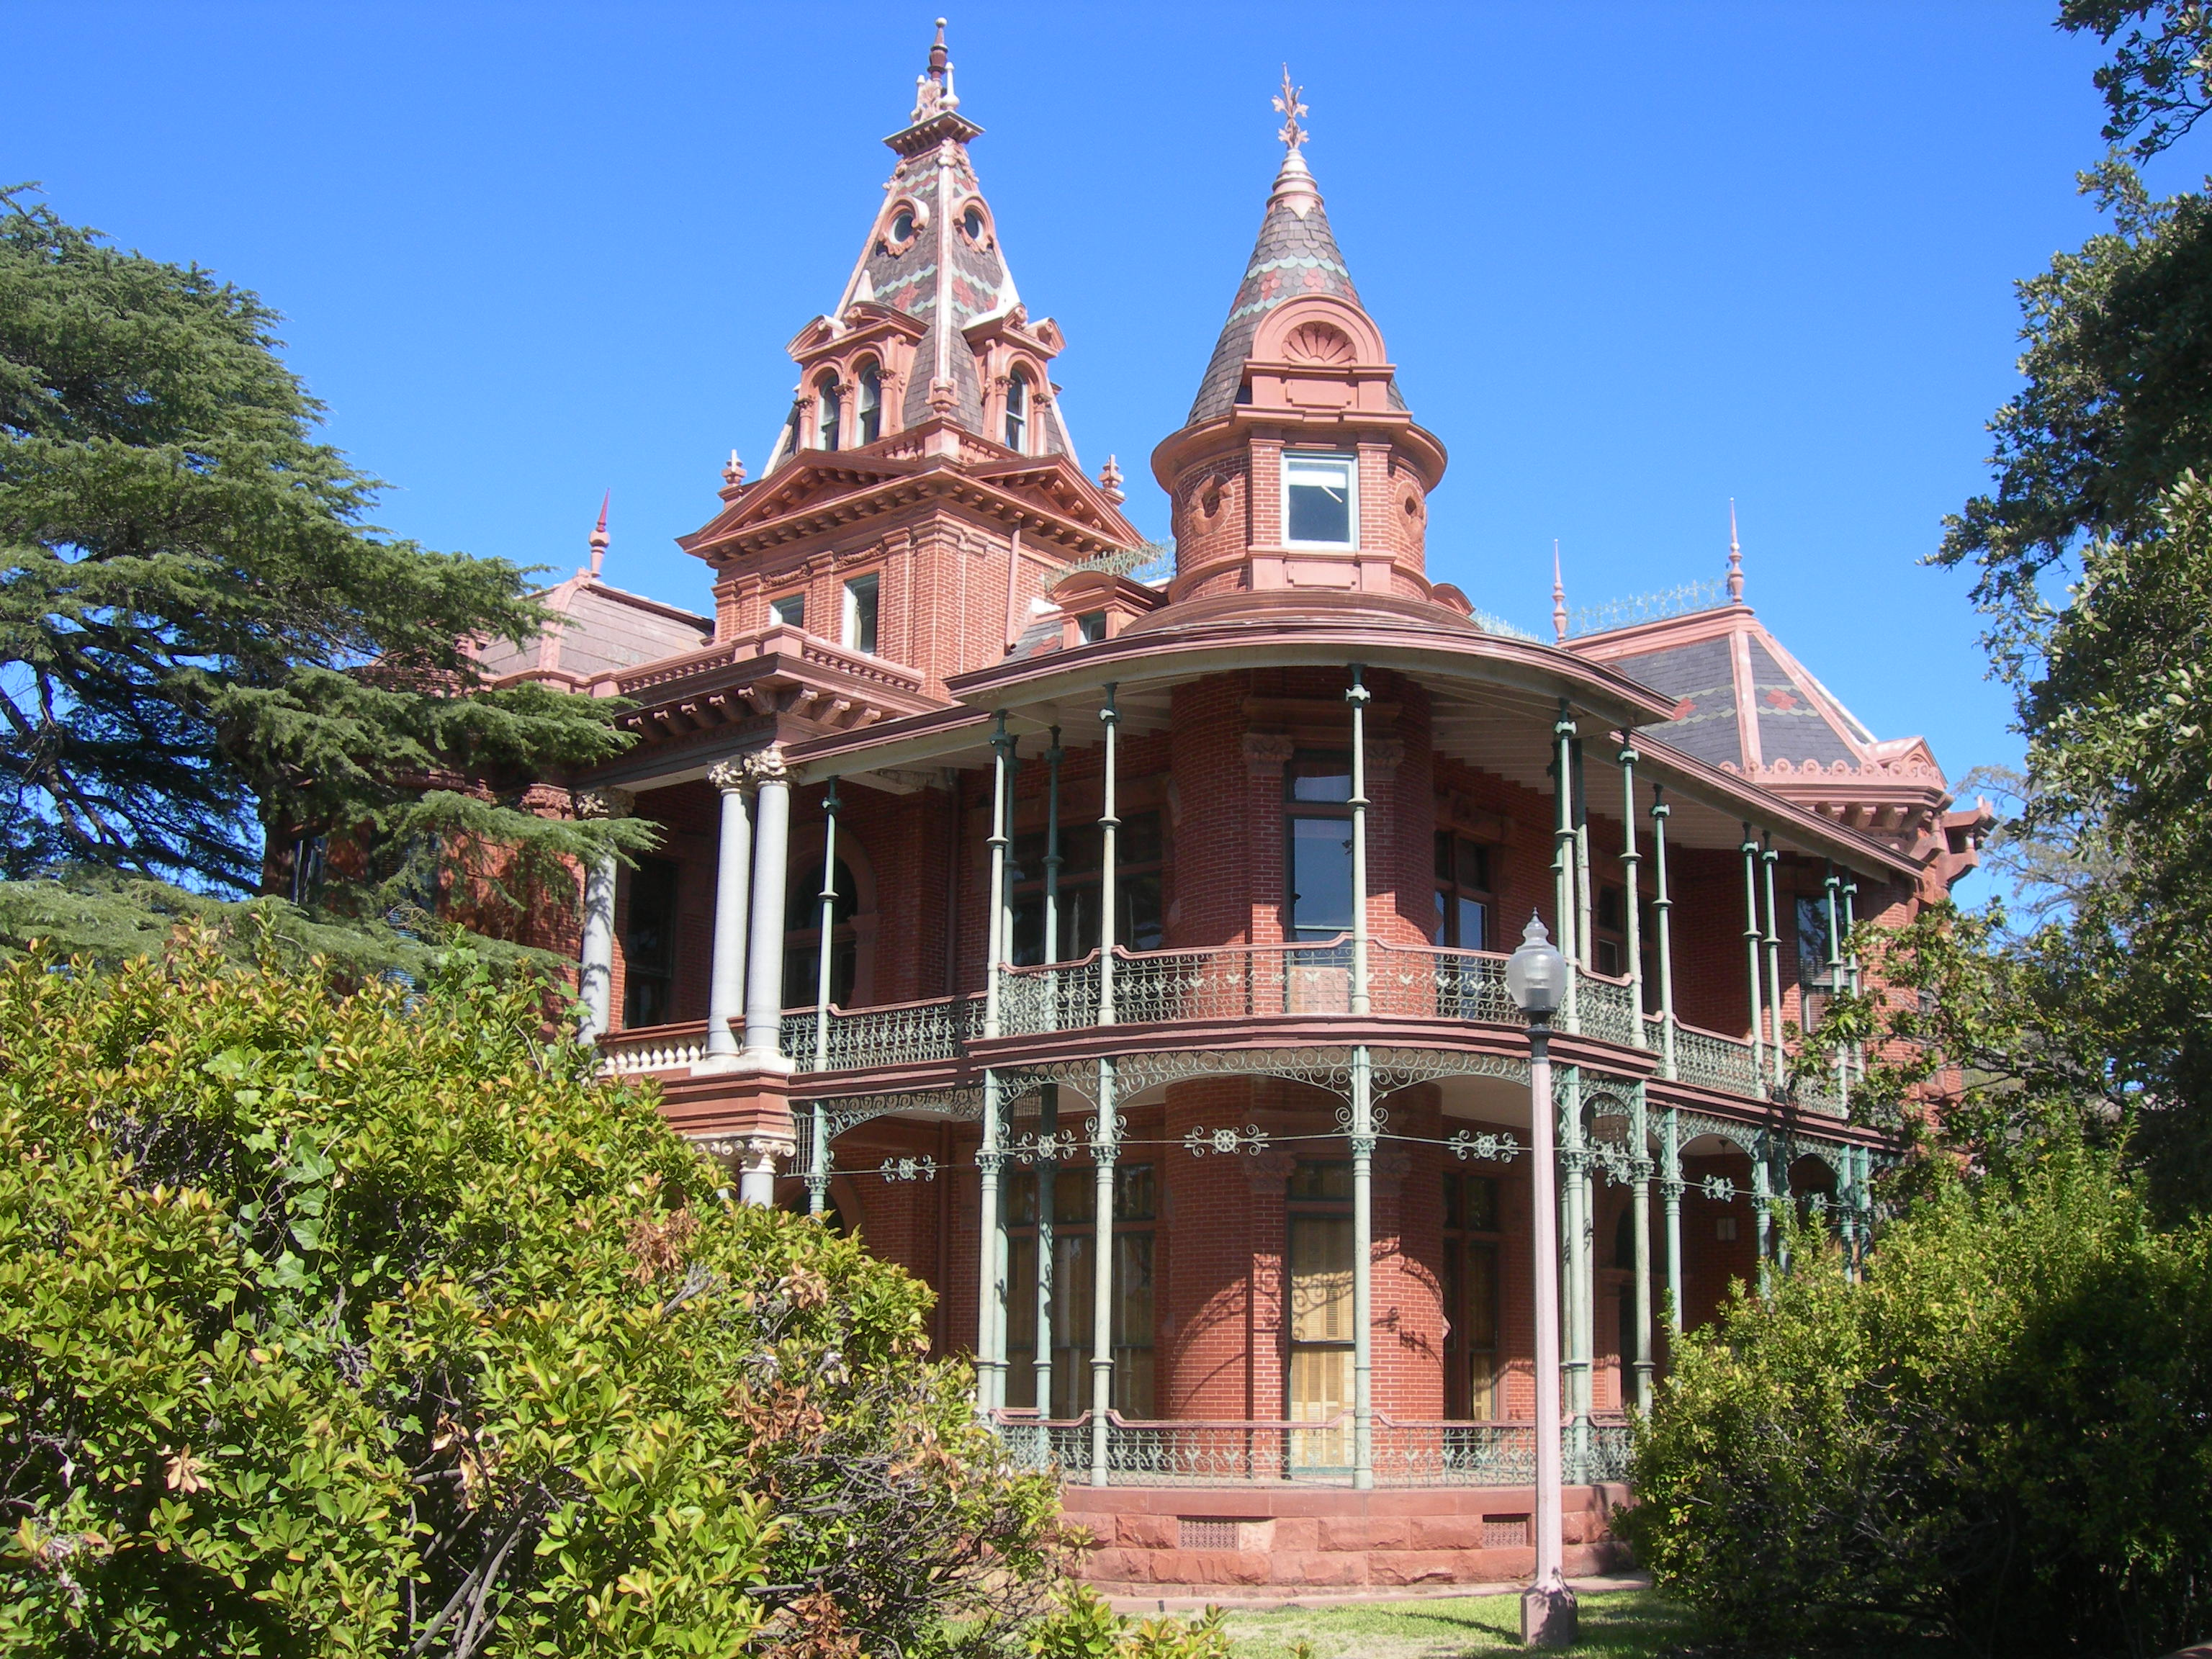 haunted texas places austin littlefield tx houses ghost most abandoned university mansion spooky mansions flickr built george onlyinyourstate chills spine